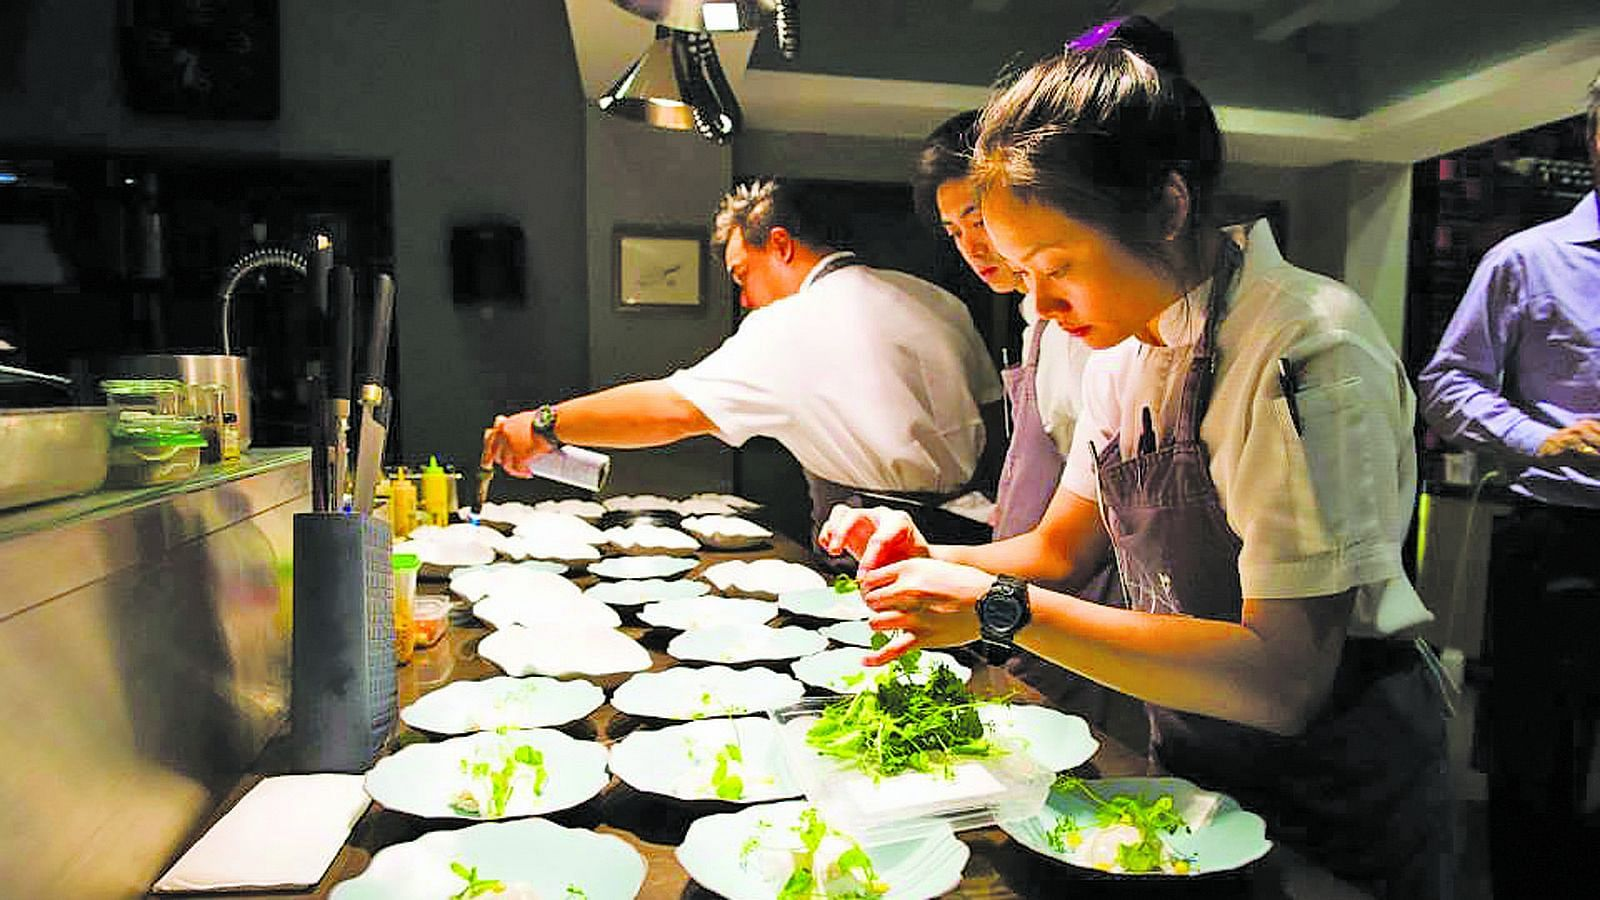 Women chefs are still a rarity but that could change soon